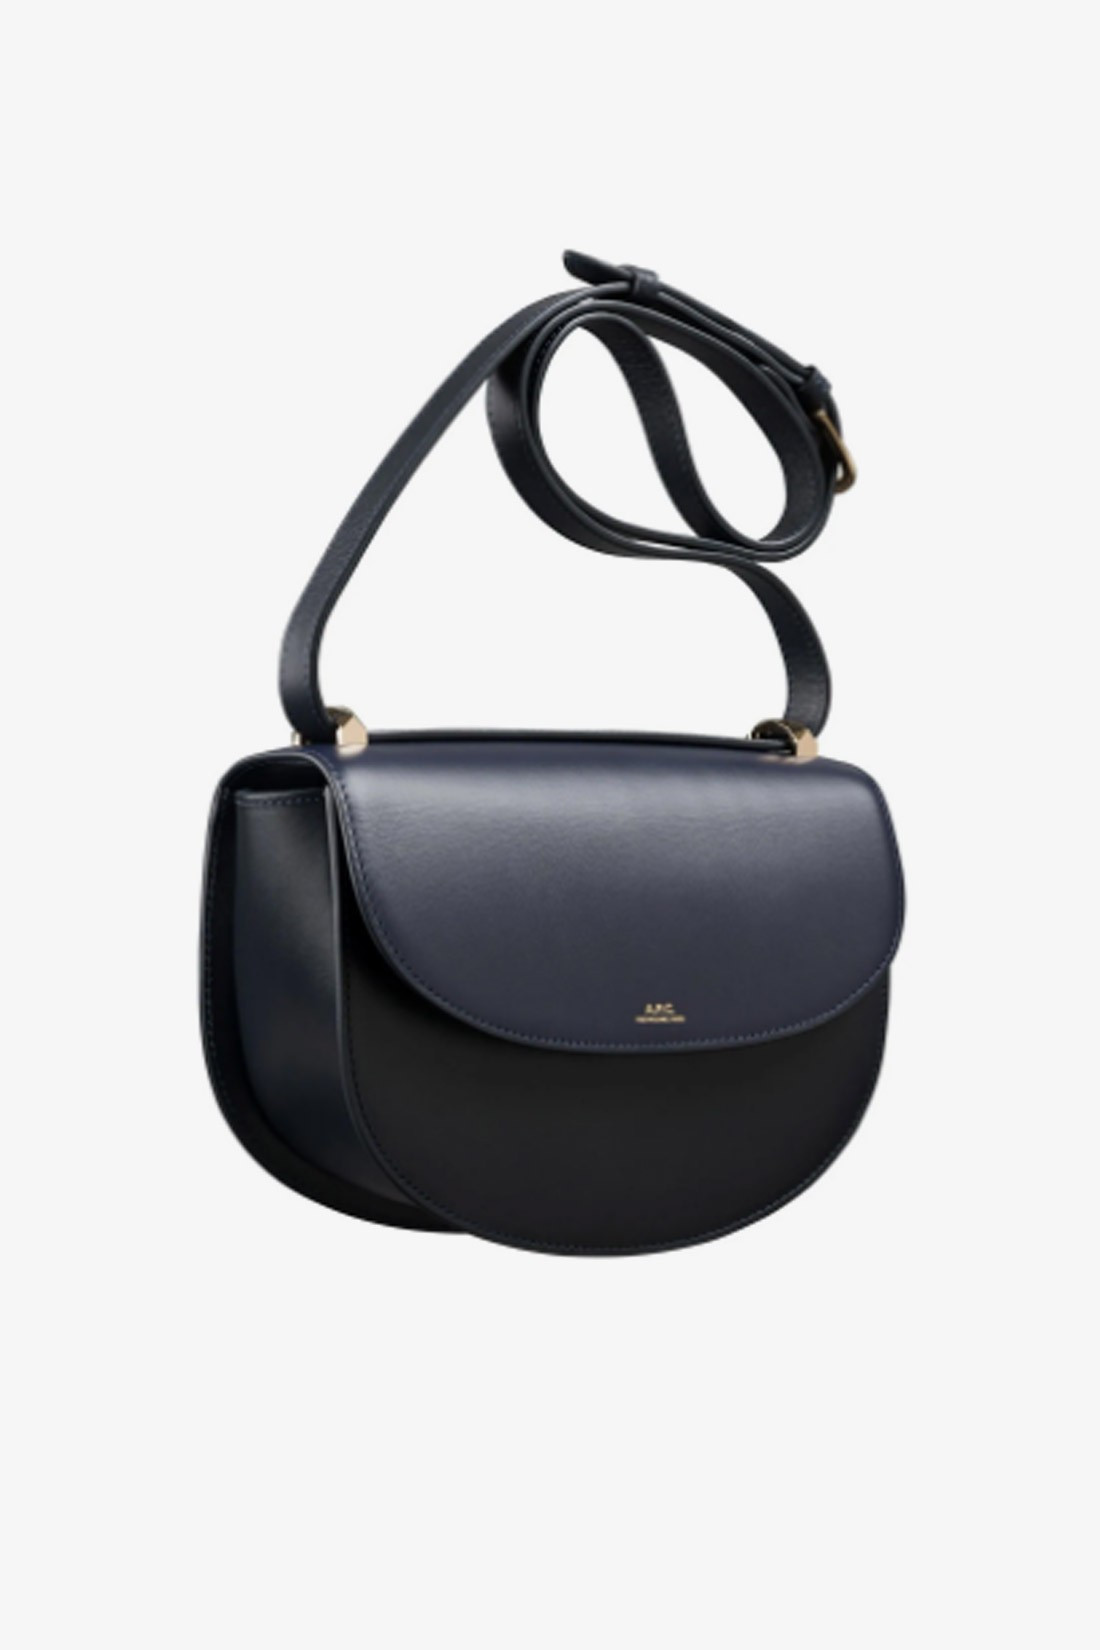 A.P.C. FOR WOMAN / Sac geneve Marine